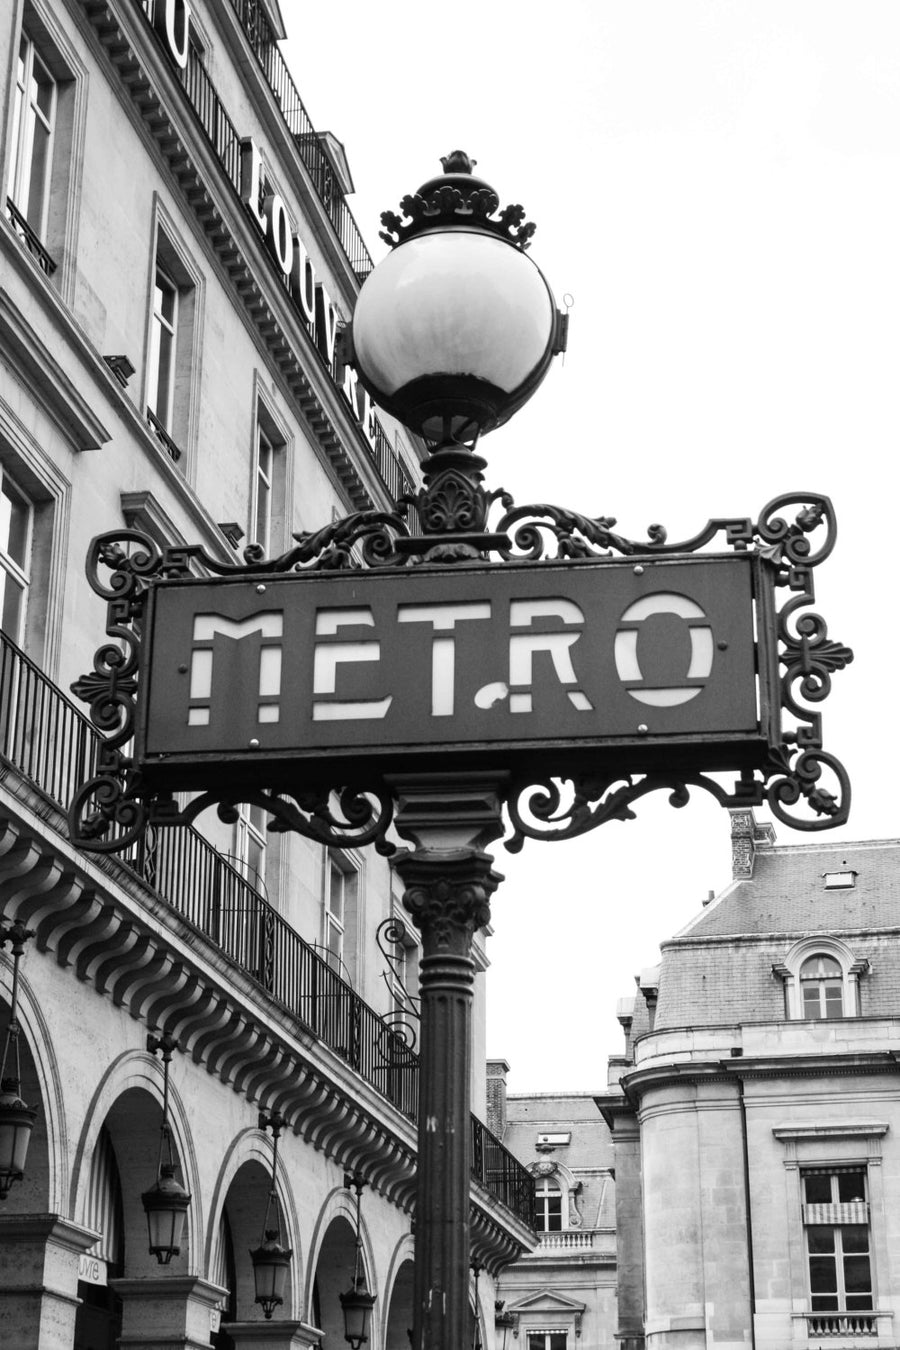 The Paris Metro at the Louvre - Every Day Paris